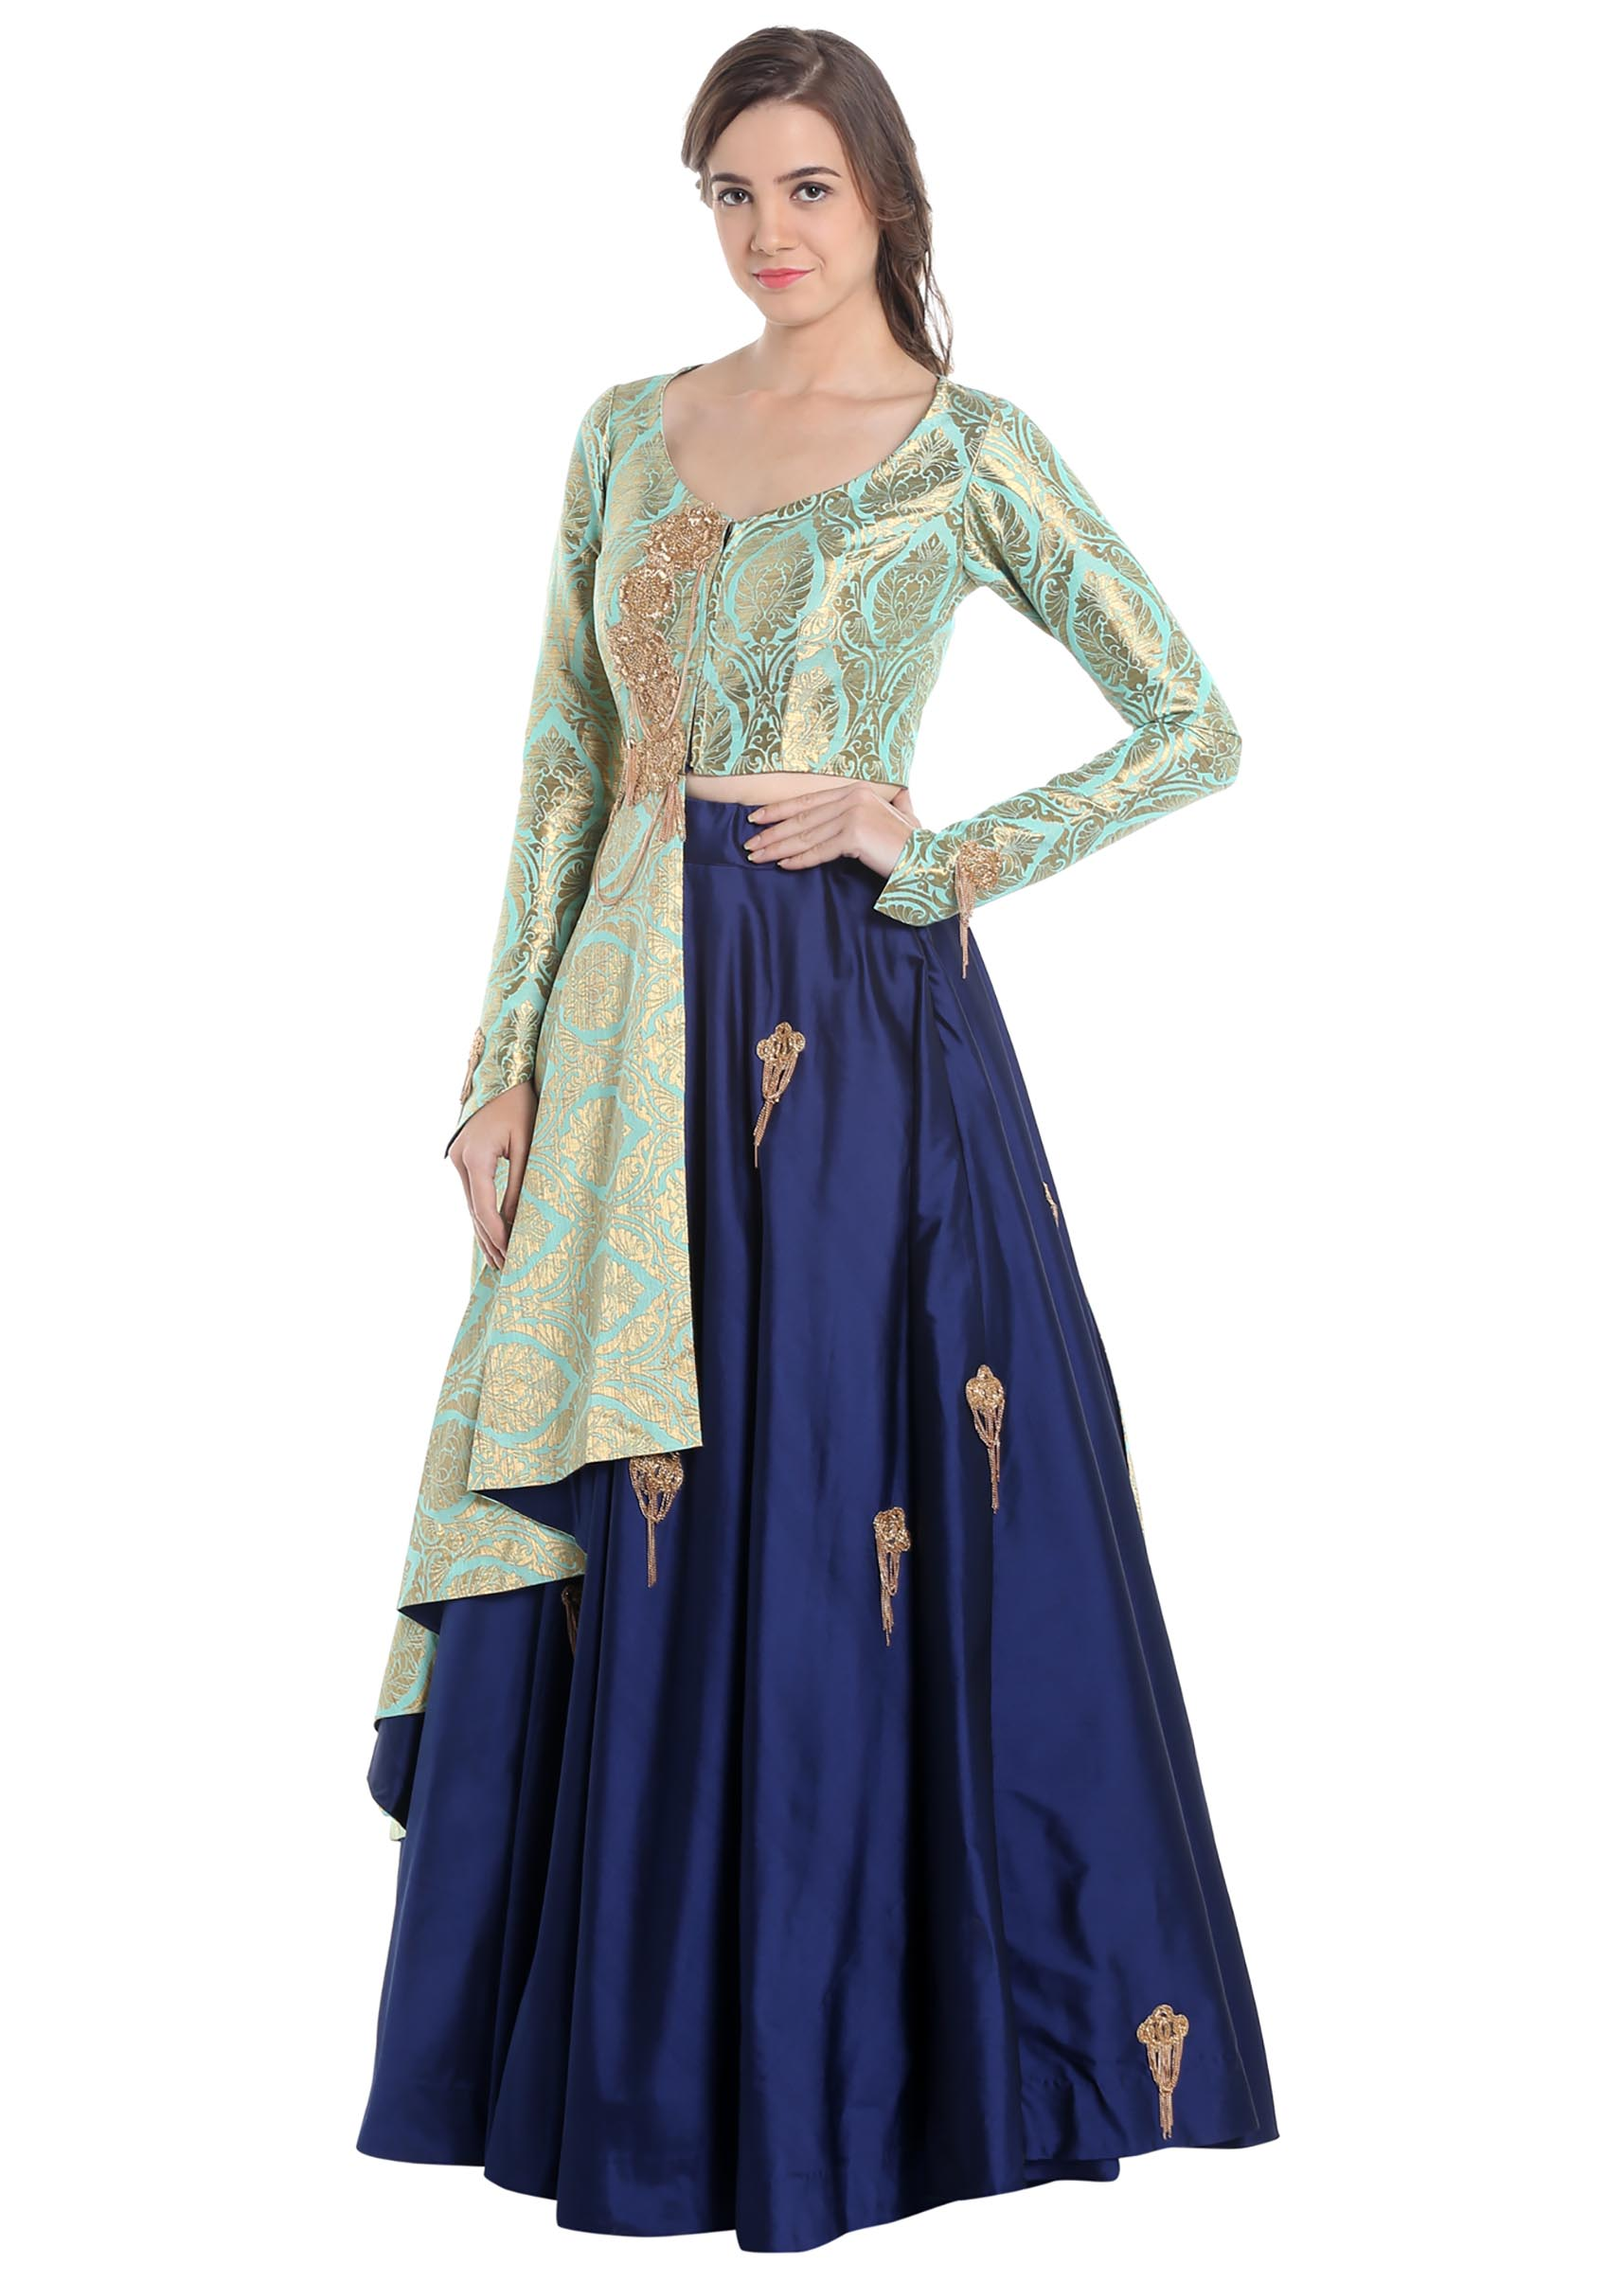 c3ab23d363 Turquoise and navy blue lehenga choli with brocade work only on Kalki